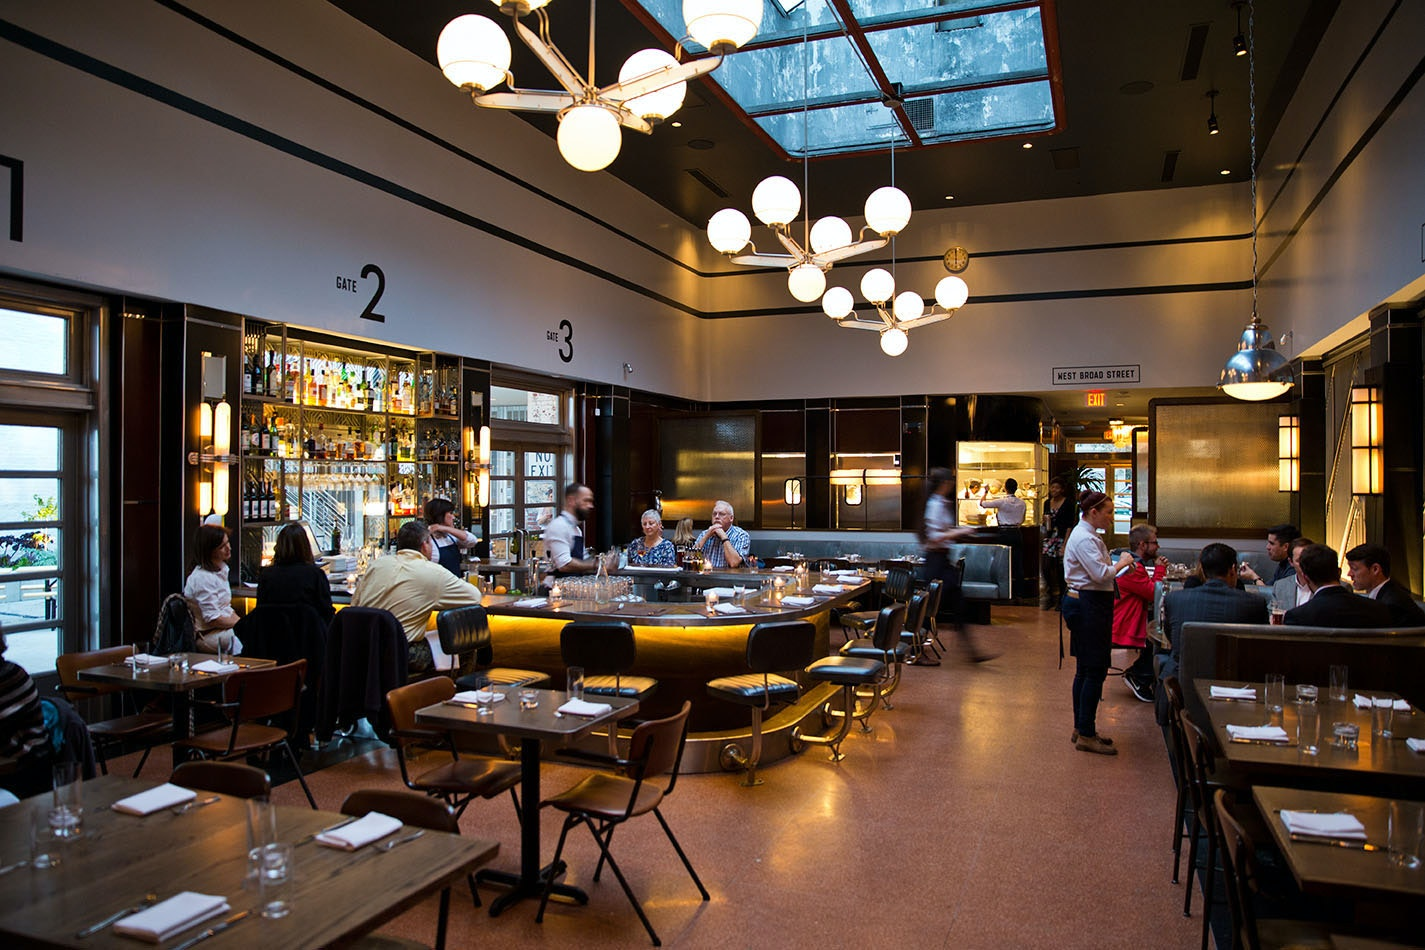 The Grey, a former bus terminal, serves Southern flavors on the plate and industrial elements in its design.